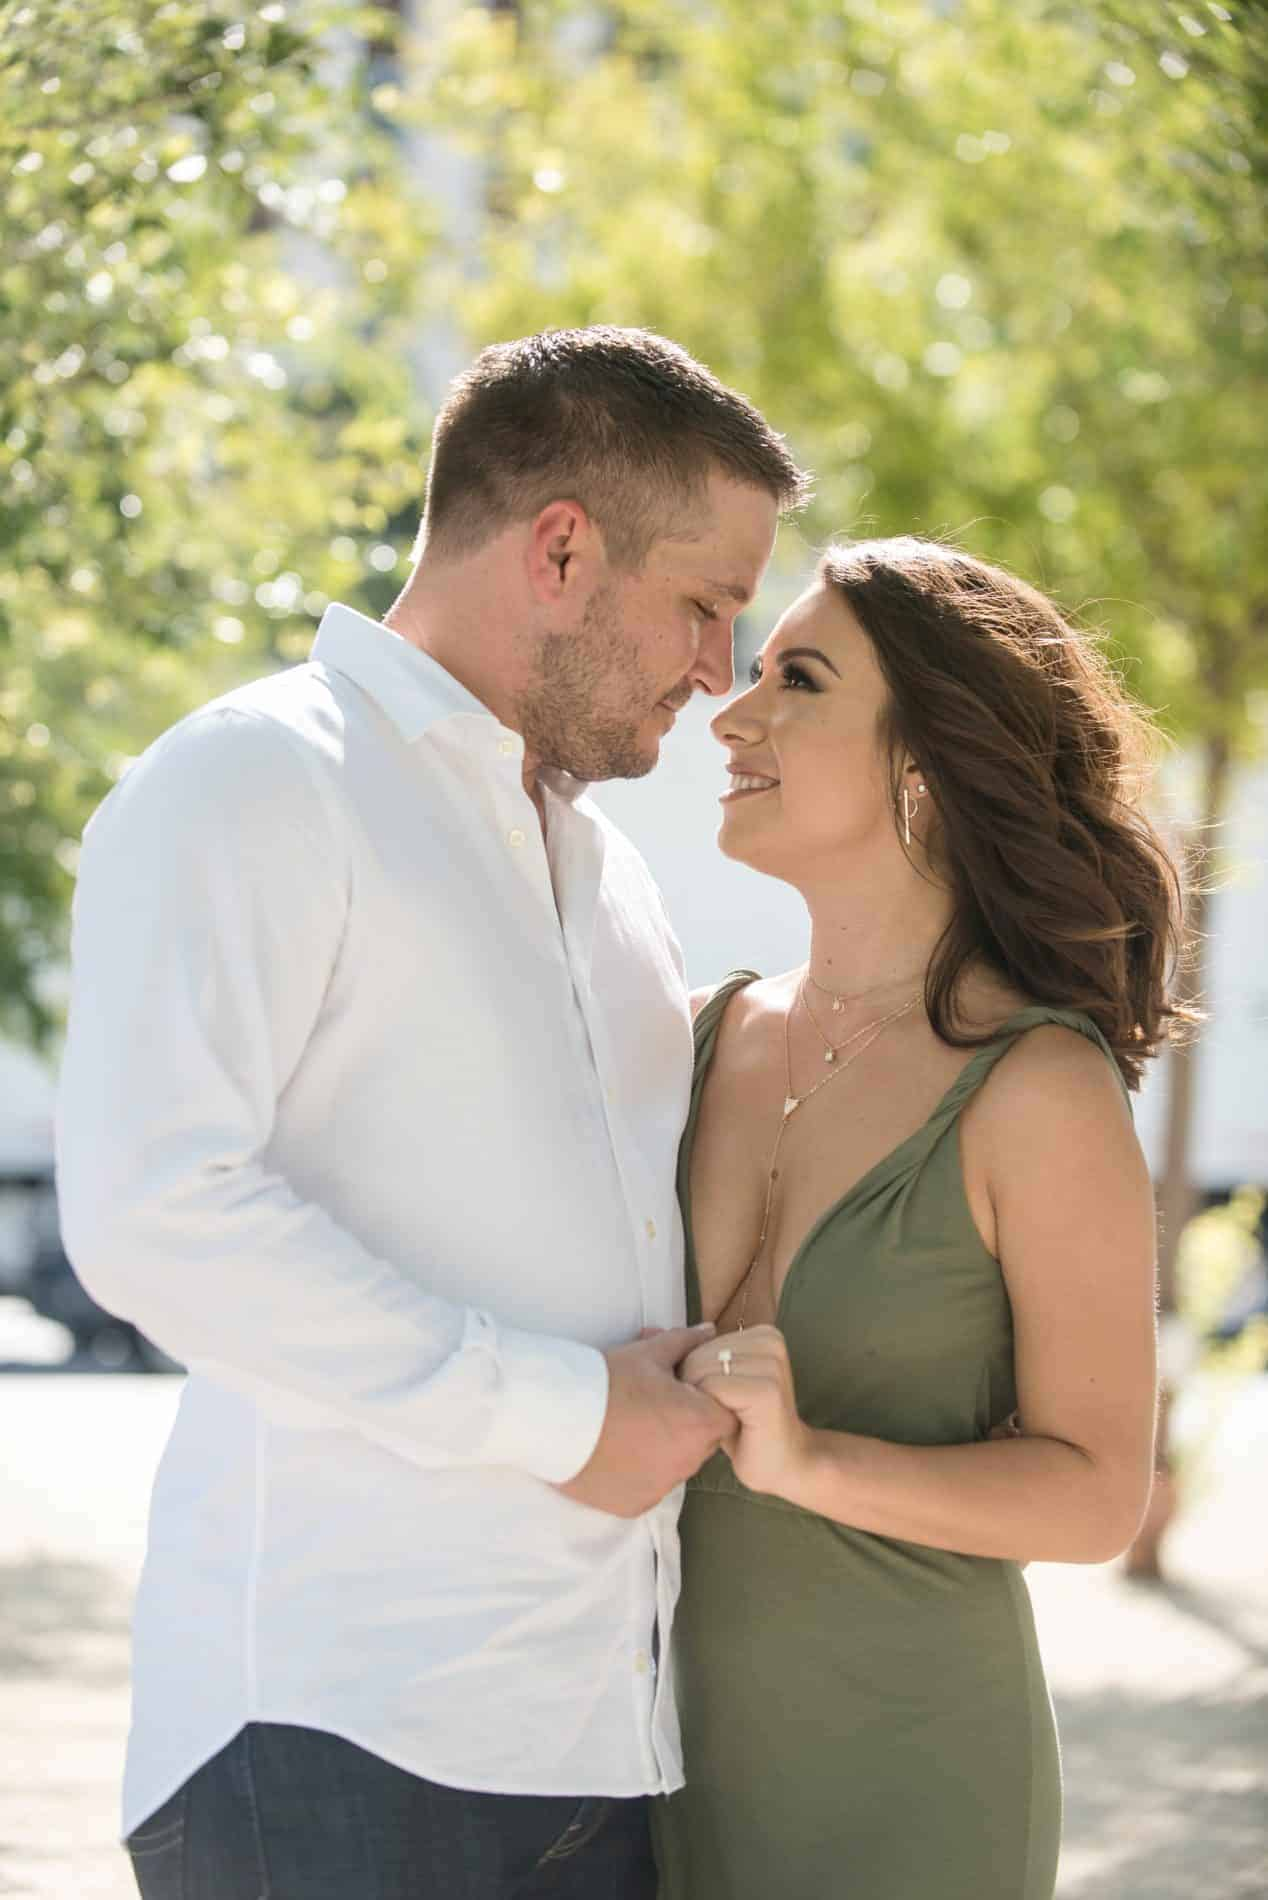 Airy style of Engagement Photos